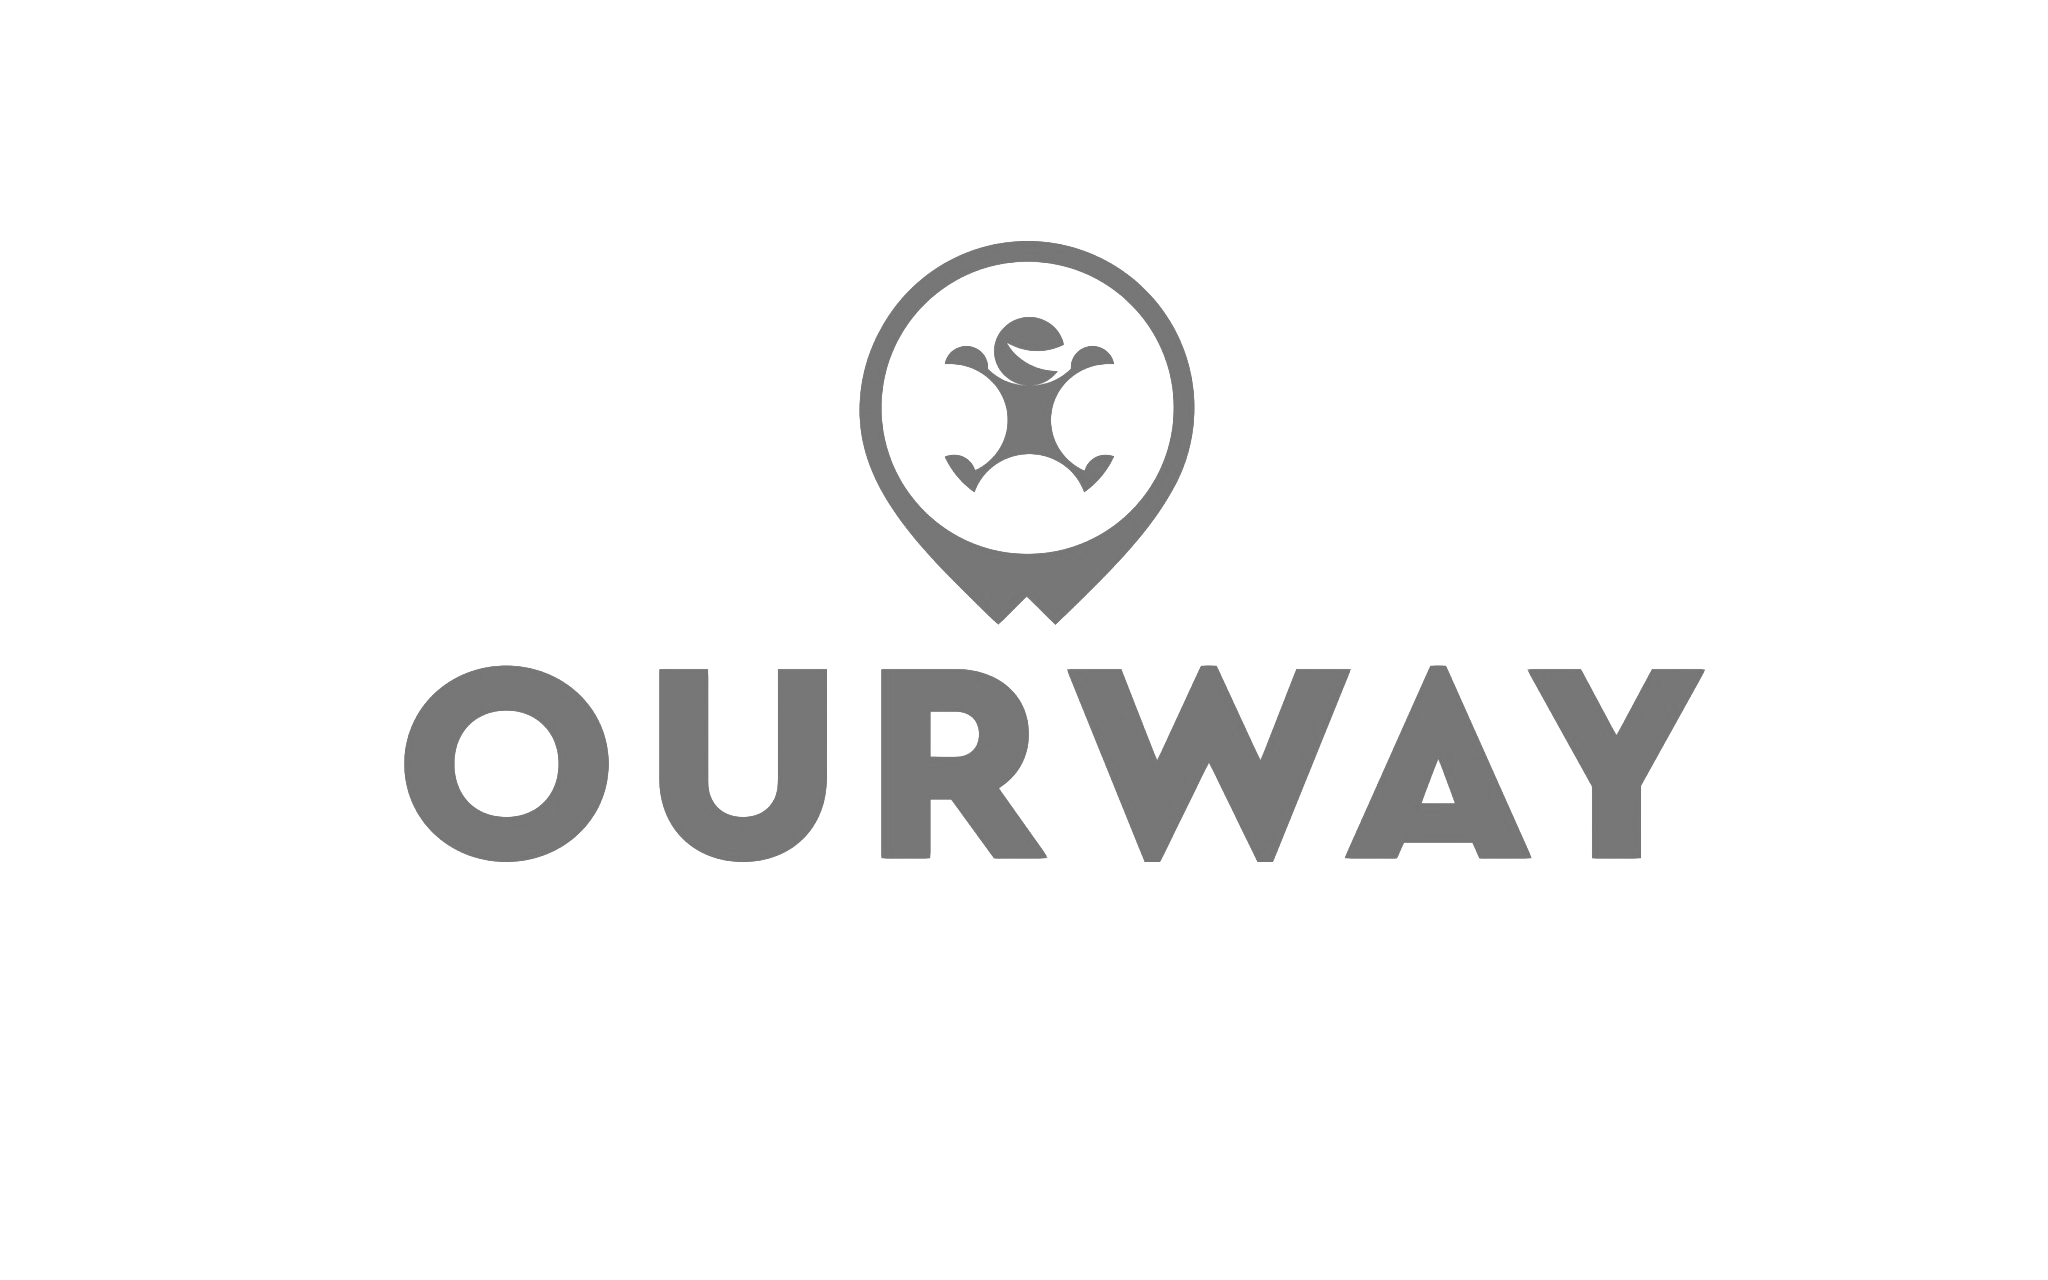 OURWAY-Logo-bw.png